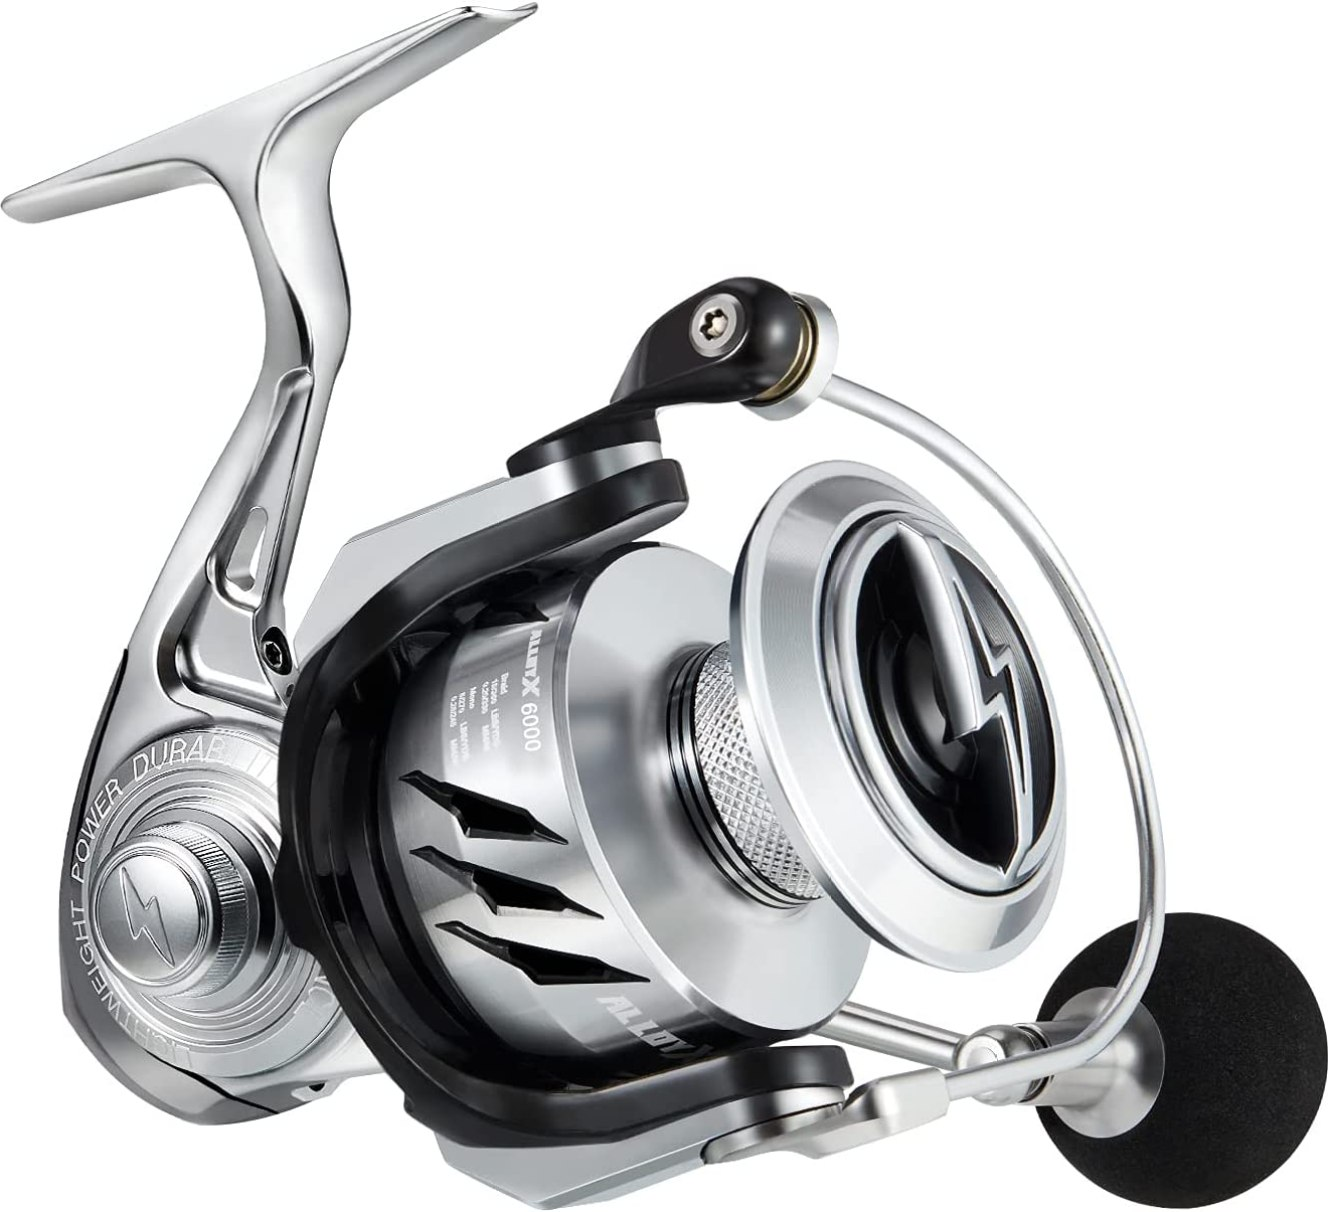 Piscifun Alloy X Spinning Reel review